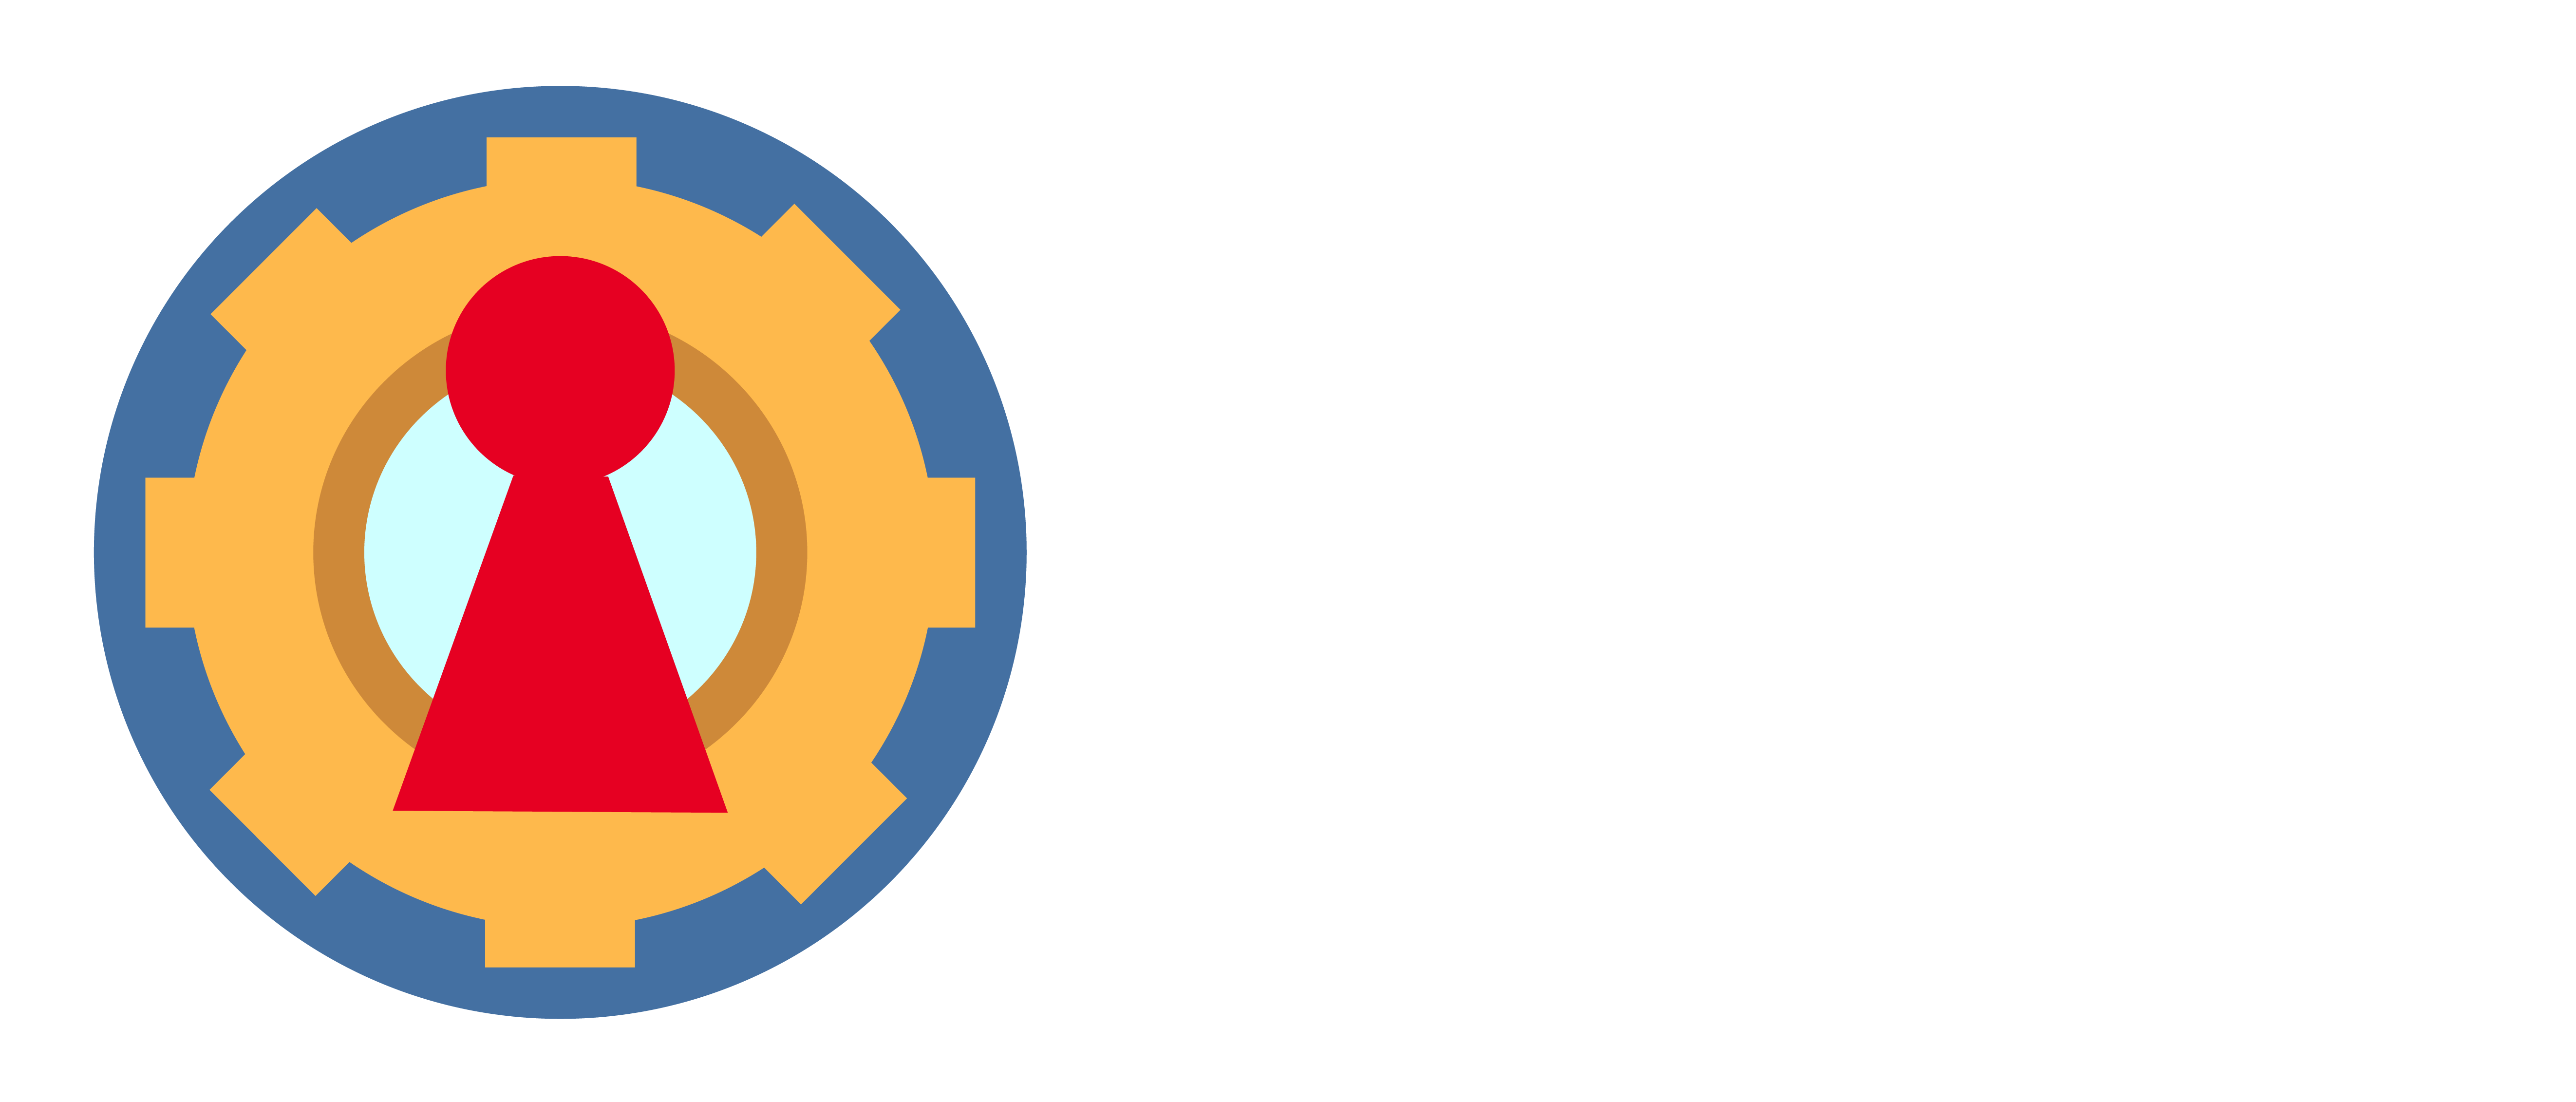 Vacuum Furnace End-User Q&A Community Logo